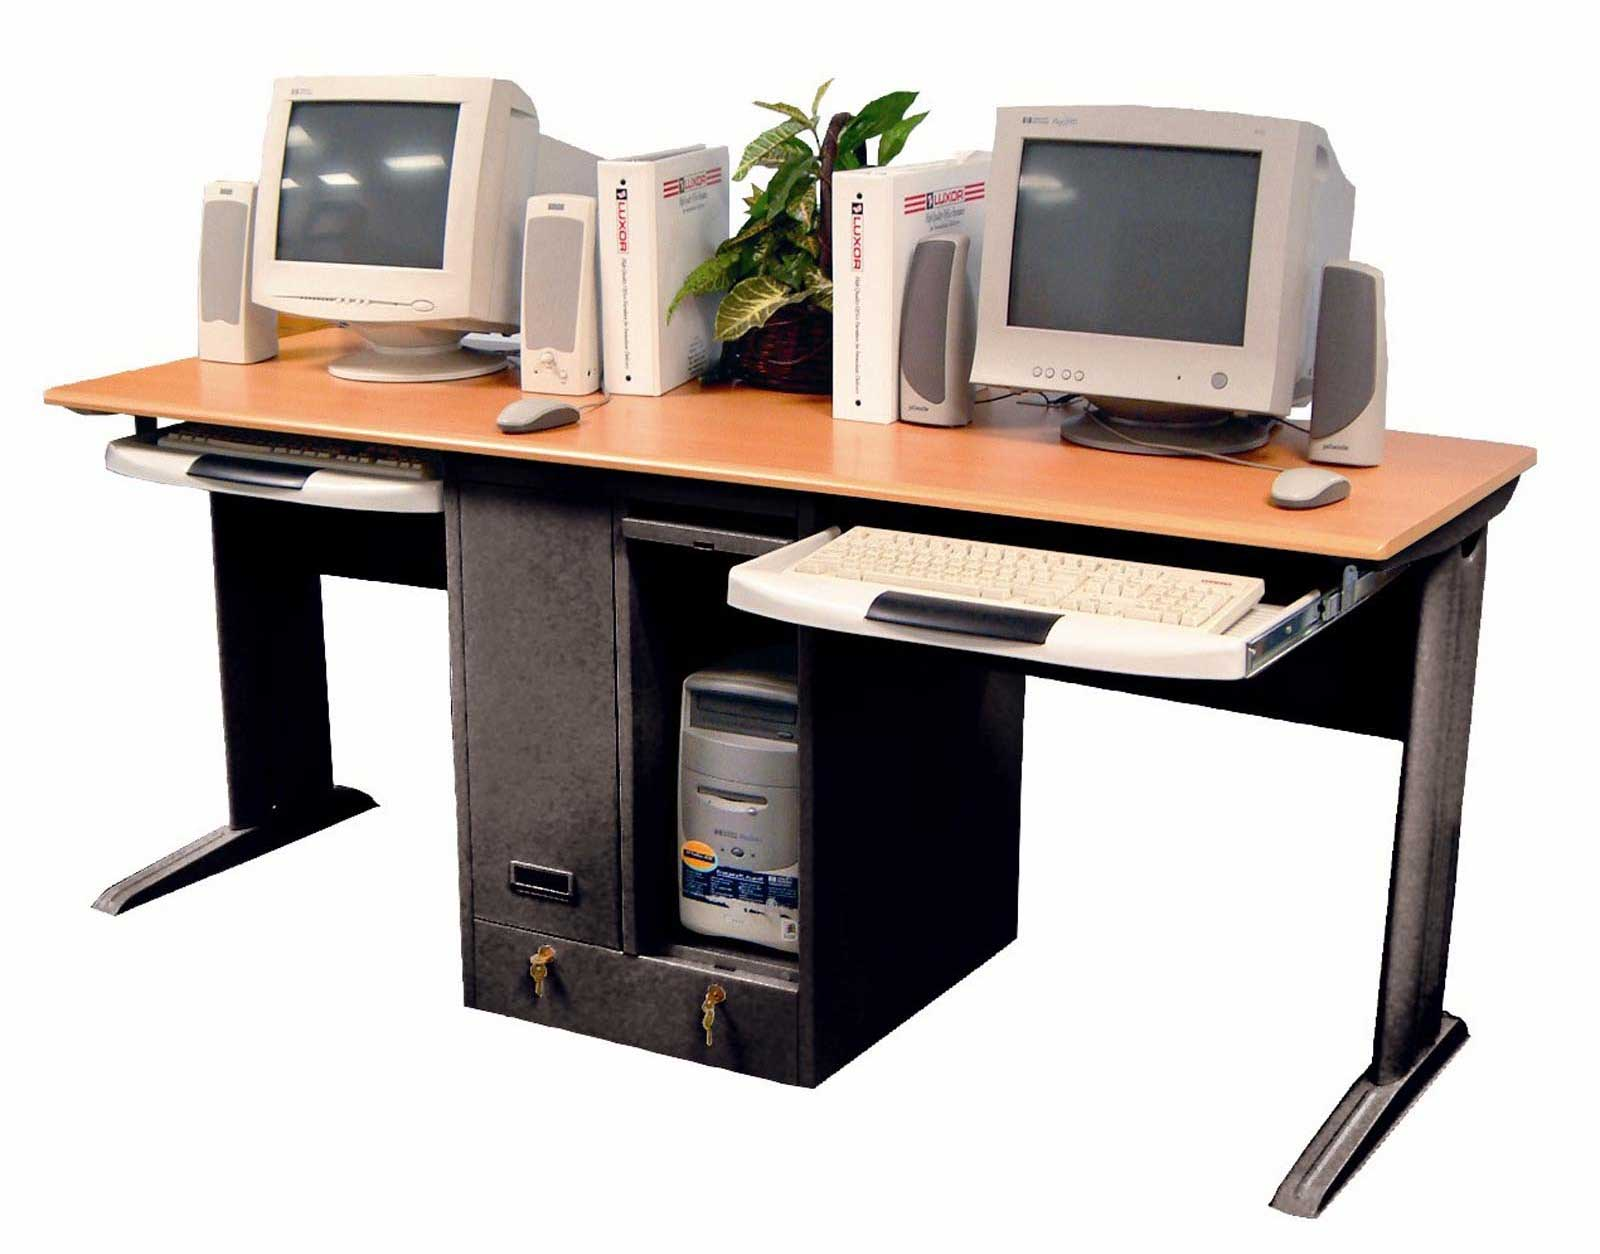 Milner Dual Computer Desk from Luxor